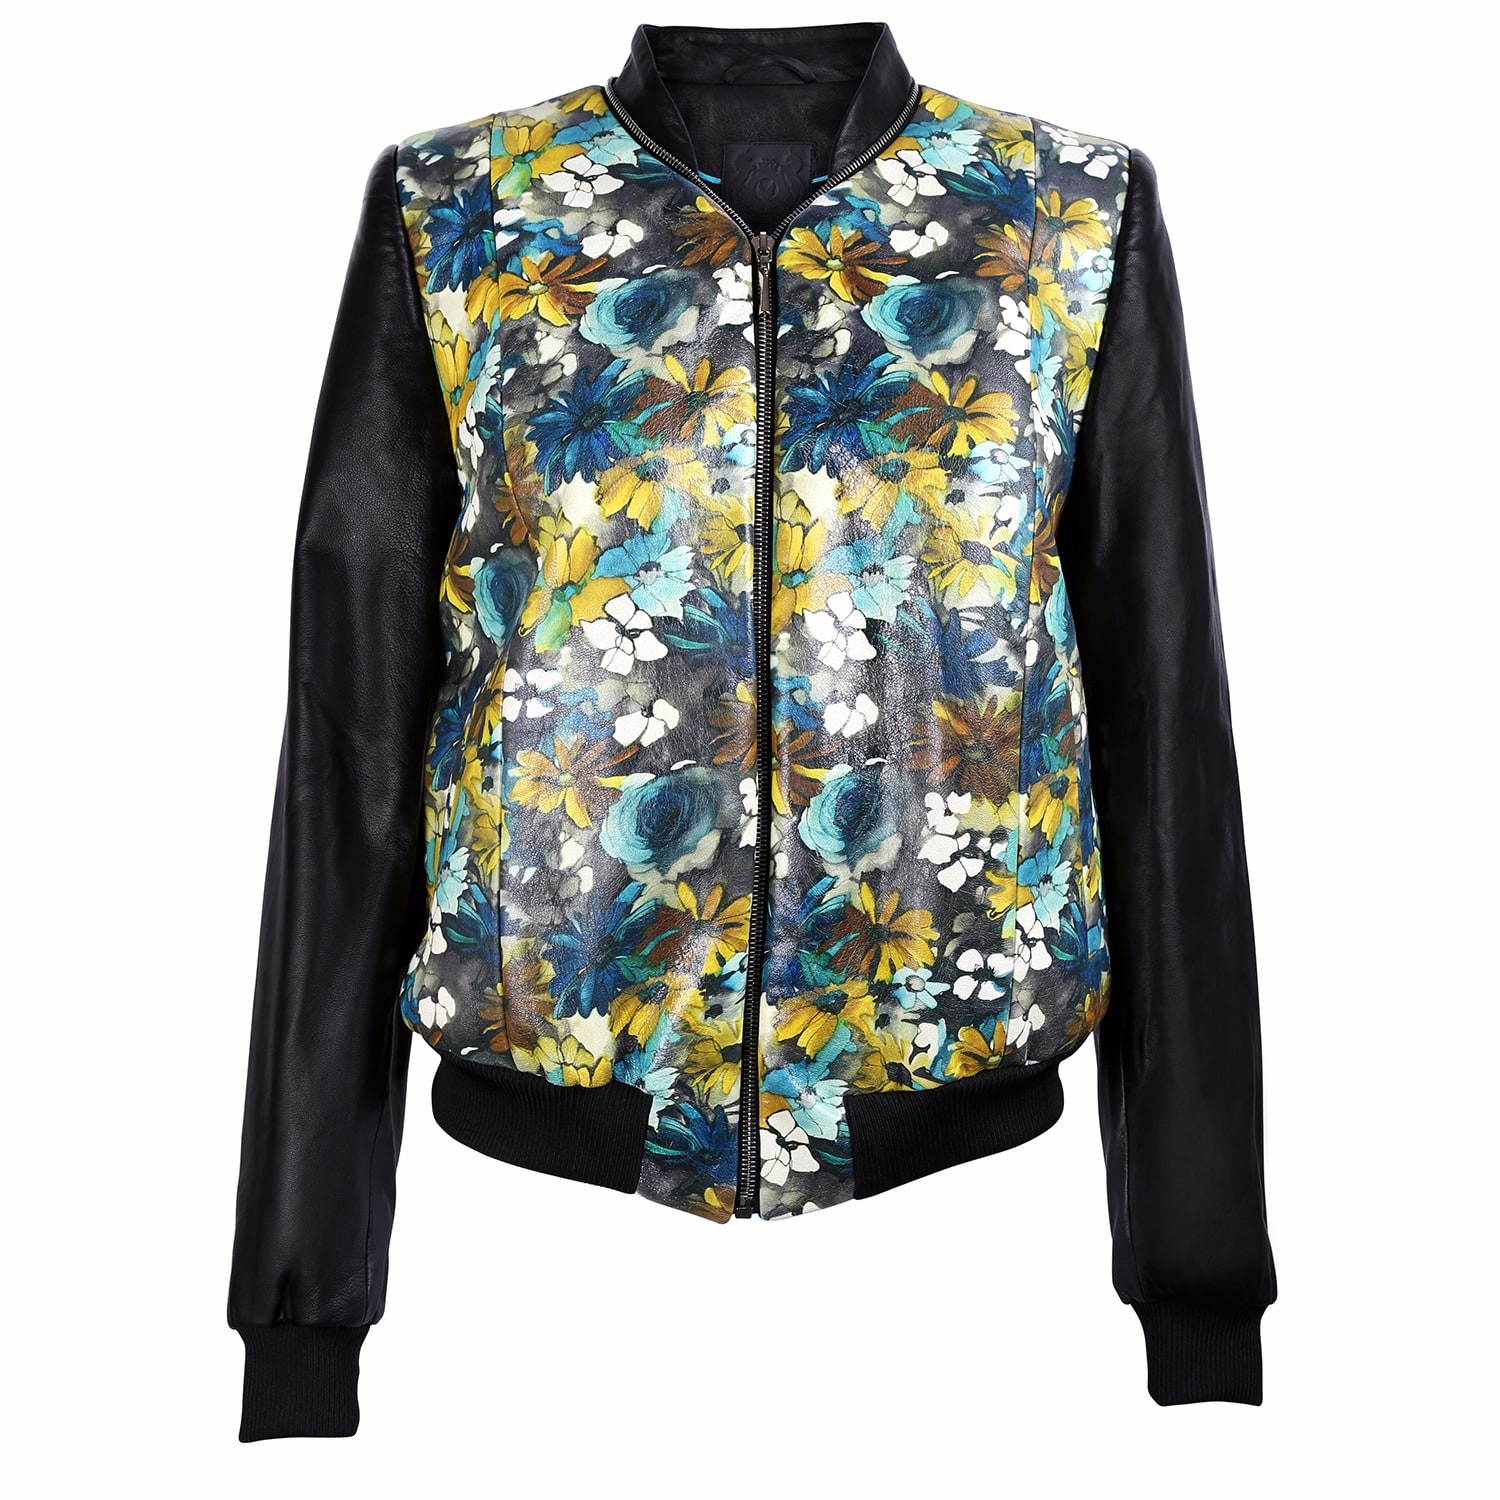 Vols & Original - Floral Print Black Leather Bomber Jacket